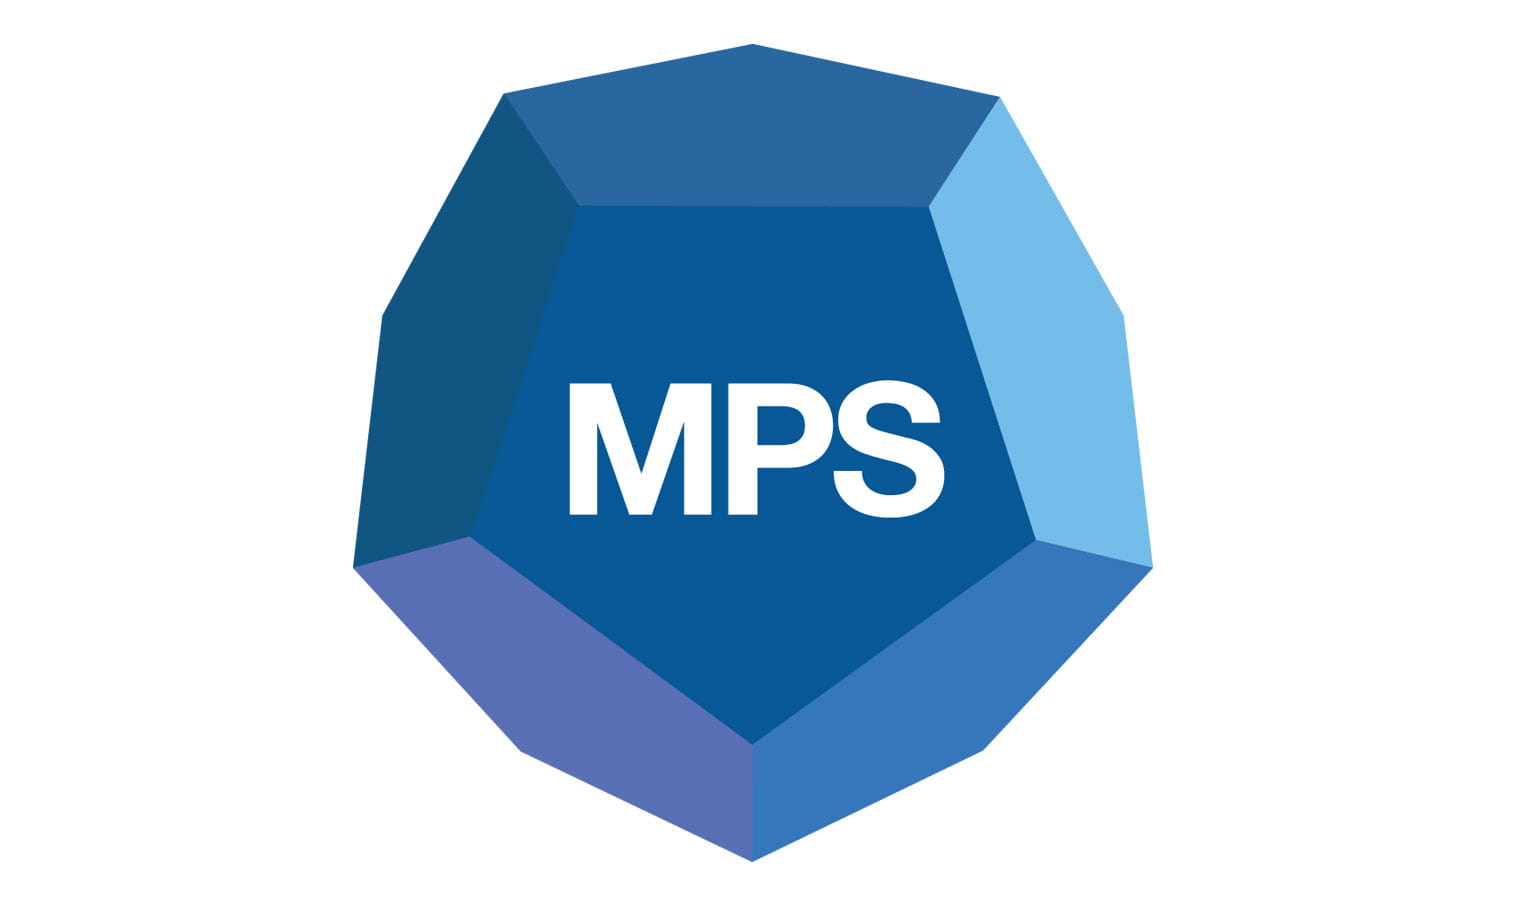 MPS-logotype-for-mps-page